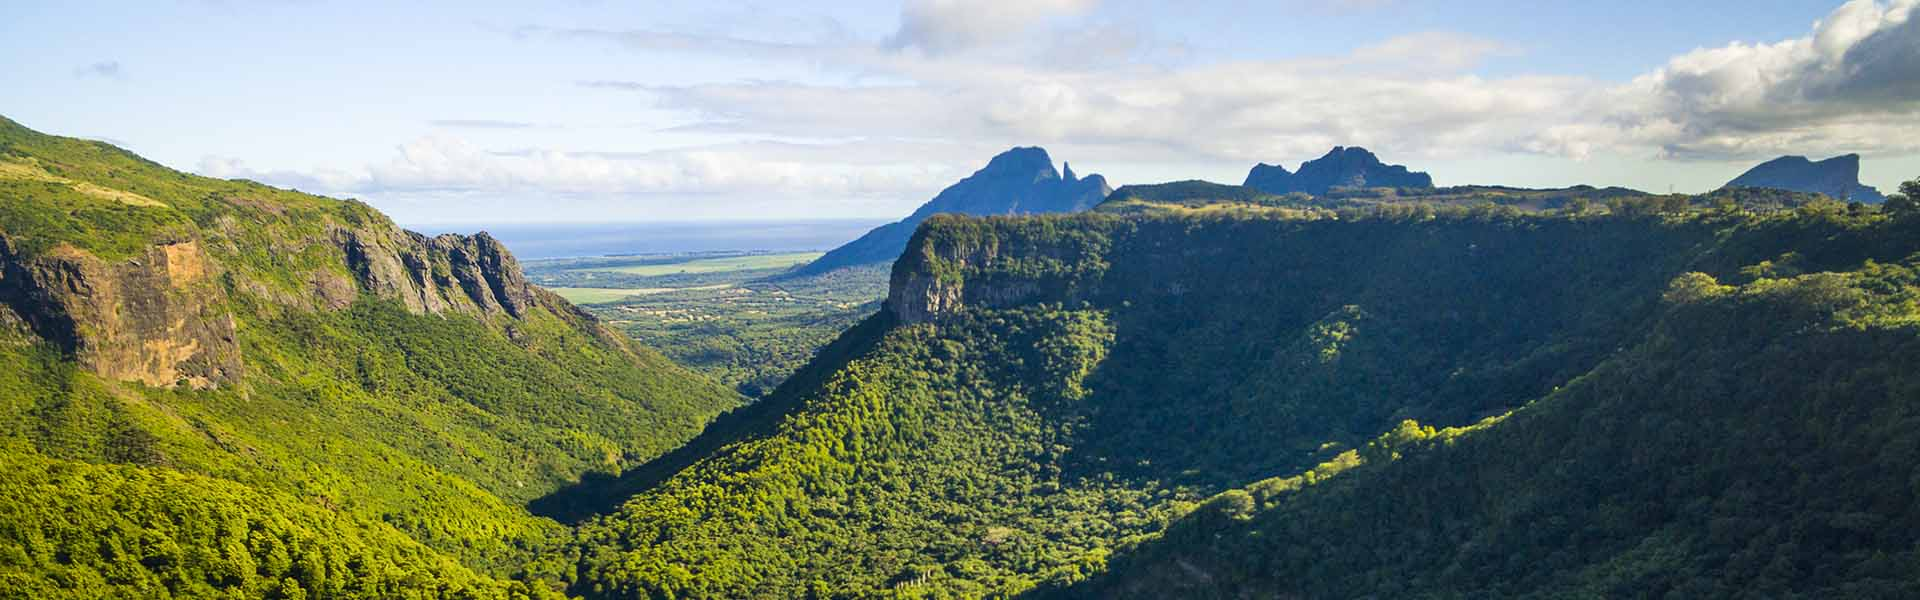 On the wild side of Mauritius